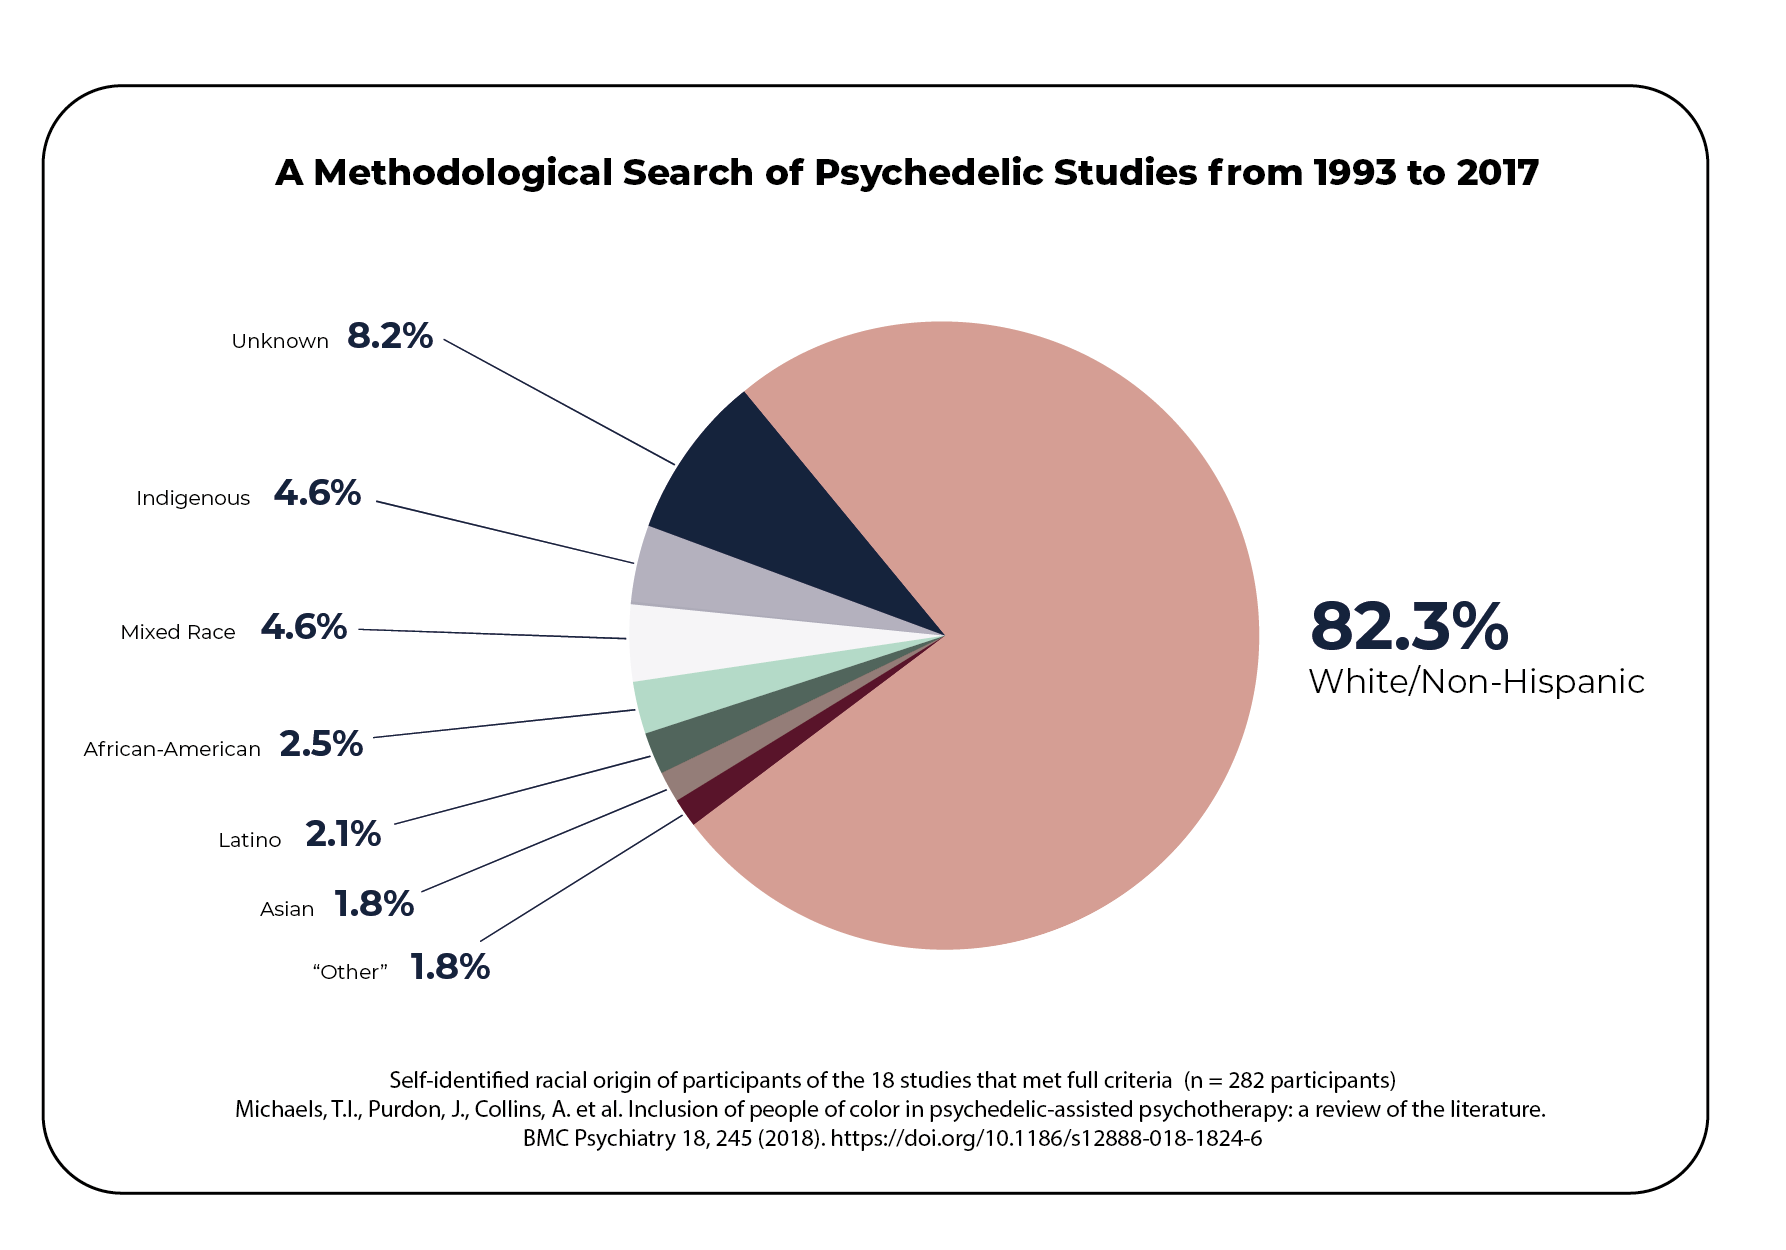 """Self-identified racial orgin of participants of the 18 studies that met full criteria:  (n = 282 participants), 82.3% of the participants were non-Hispanic White, 2.5% were African-American, 2.1% were of Latino origin, 1.8% were of Asian origin, 4.6% w ere of indigenous origin, 4.6% were of mixed race, 1.8% identified their race as """"other,"""" and the ethnicity of 8.2% of participants was unknown"""